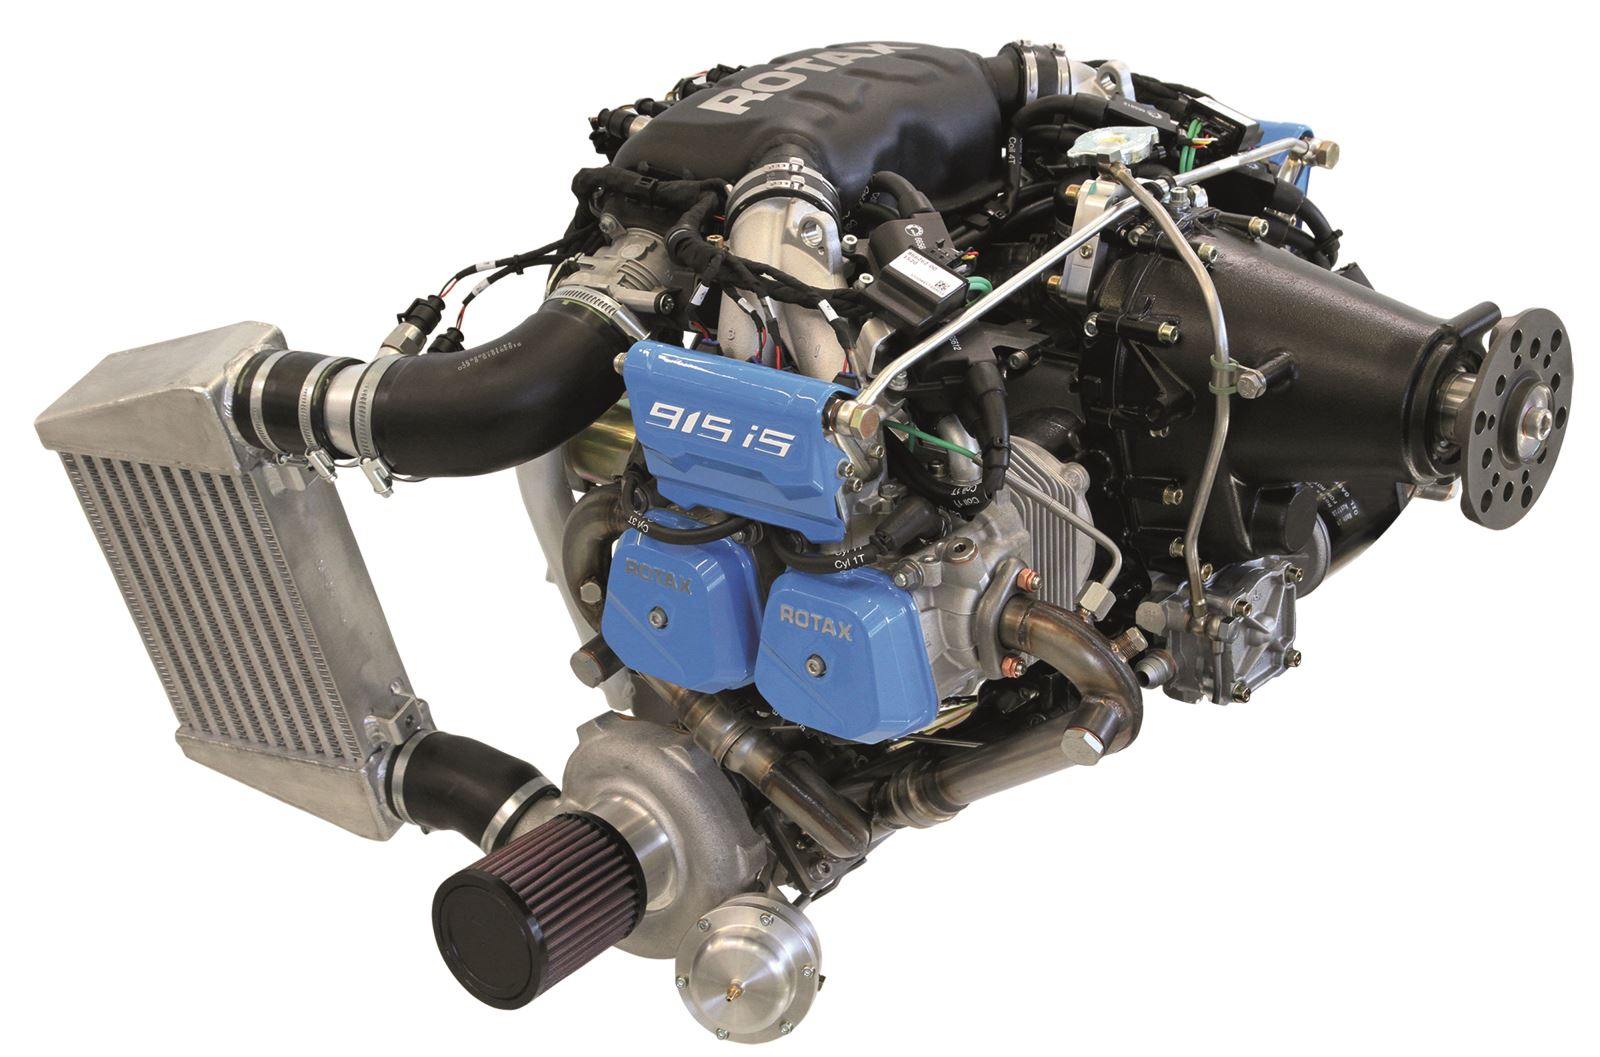 Brp Introduces More Powerful 135 Hp Rotax Engine For